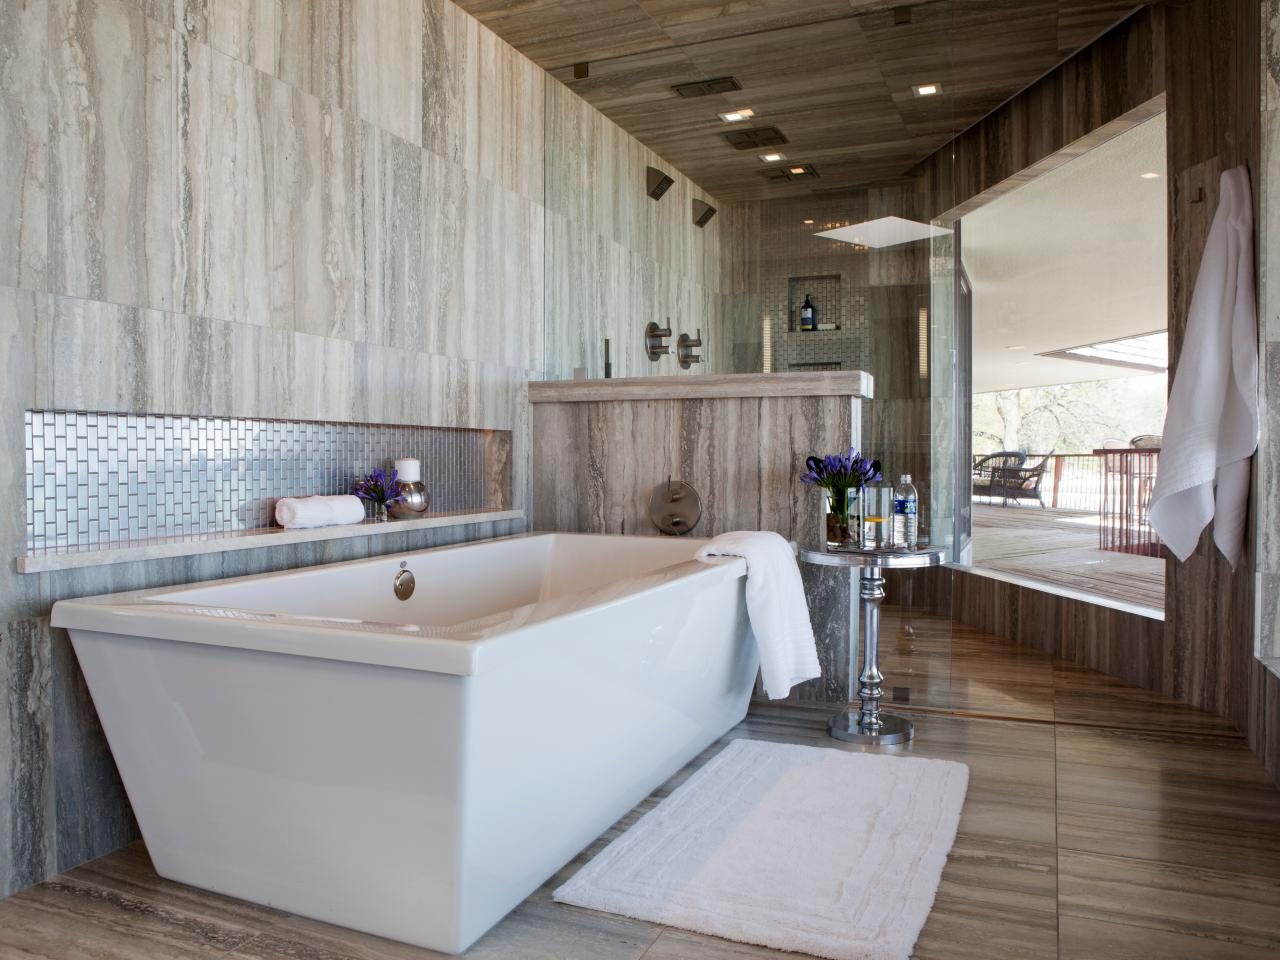 Contemporary bathrooms pictures ideas tips from hgtv for Modern bathroom design ideas small spaces